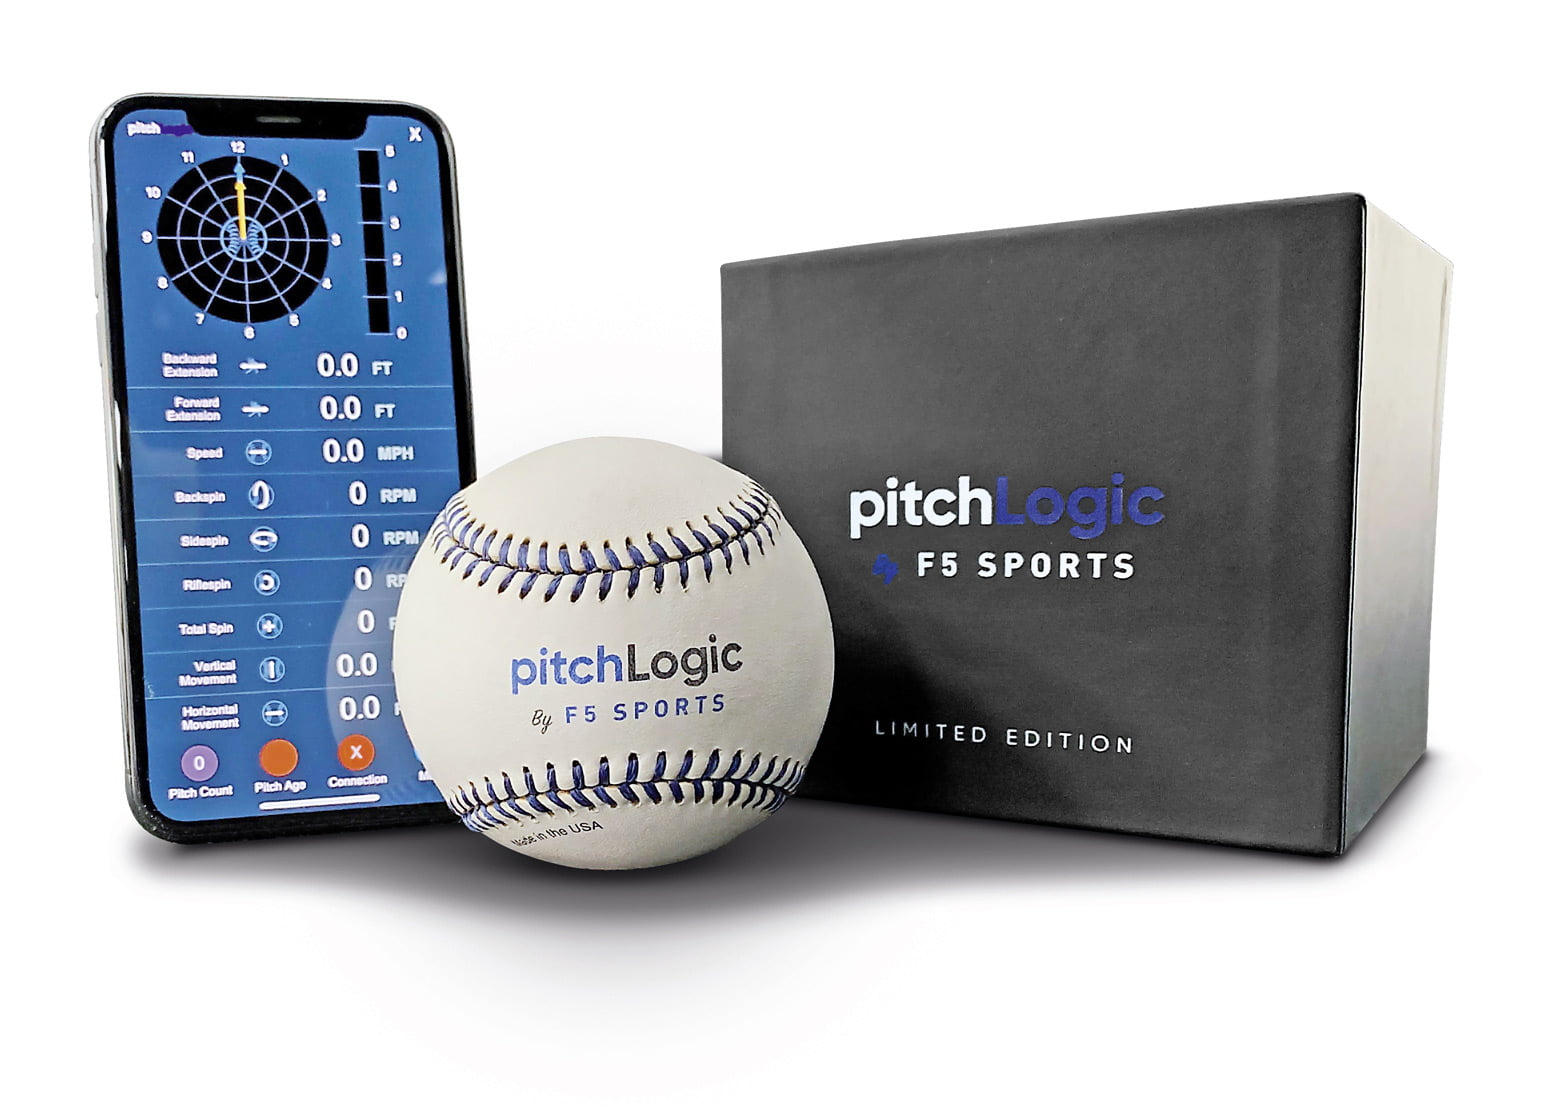 F5 Sports pitchLogic system